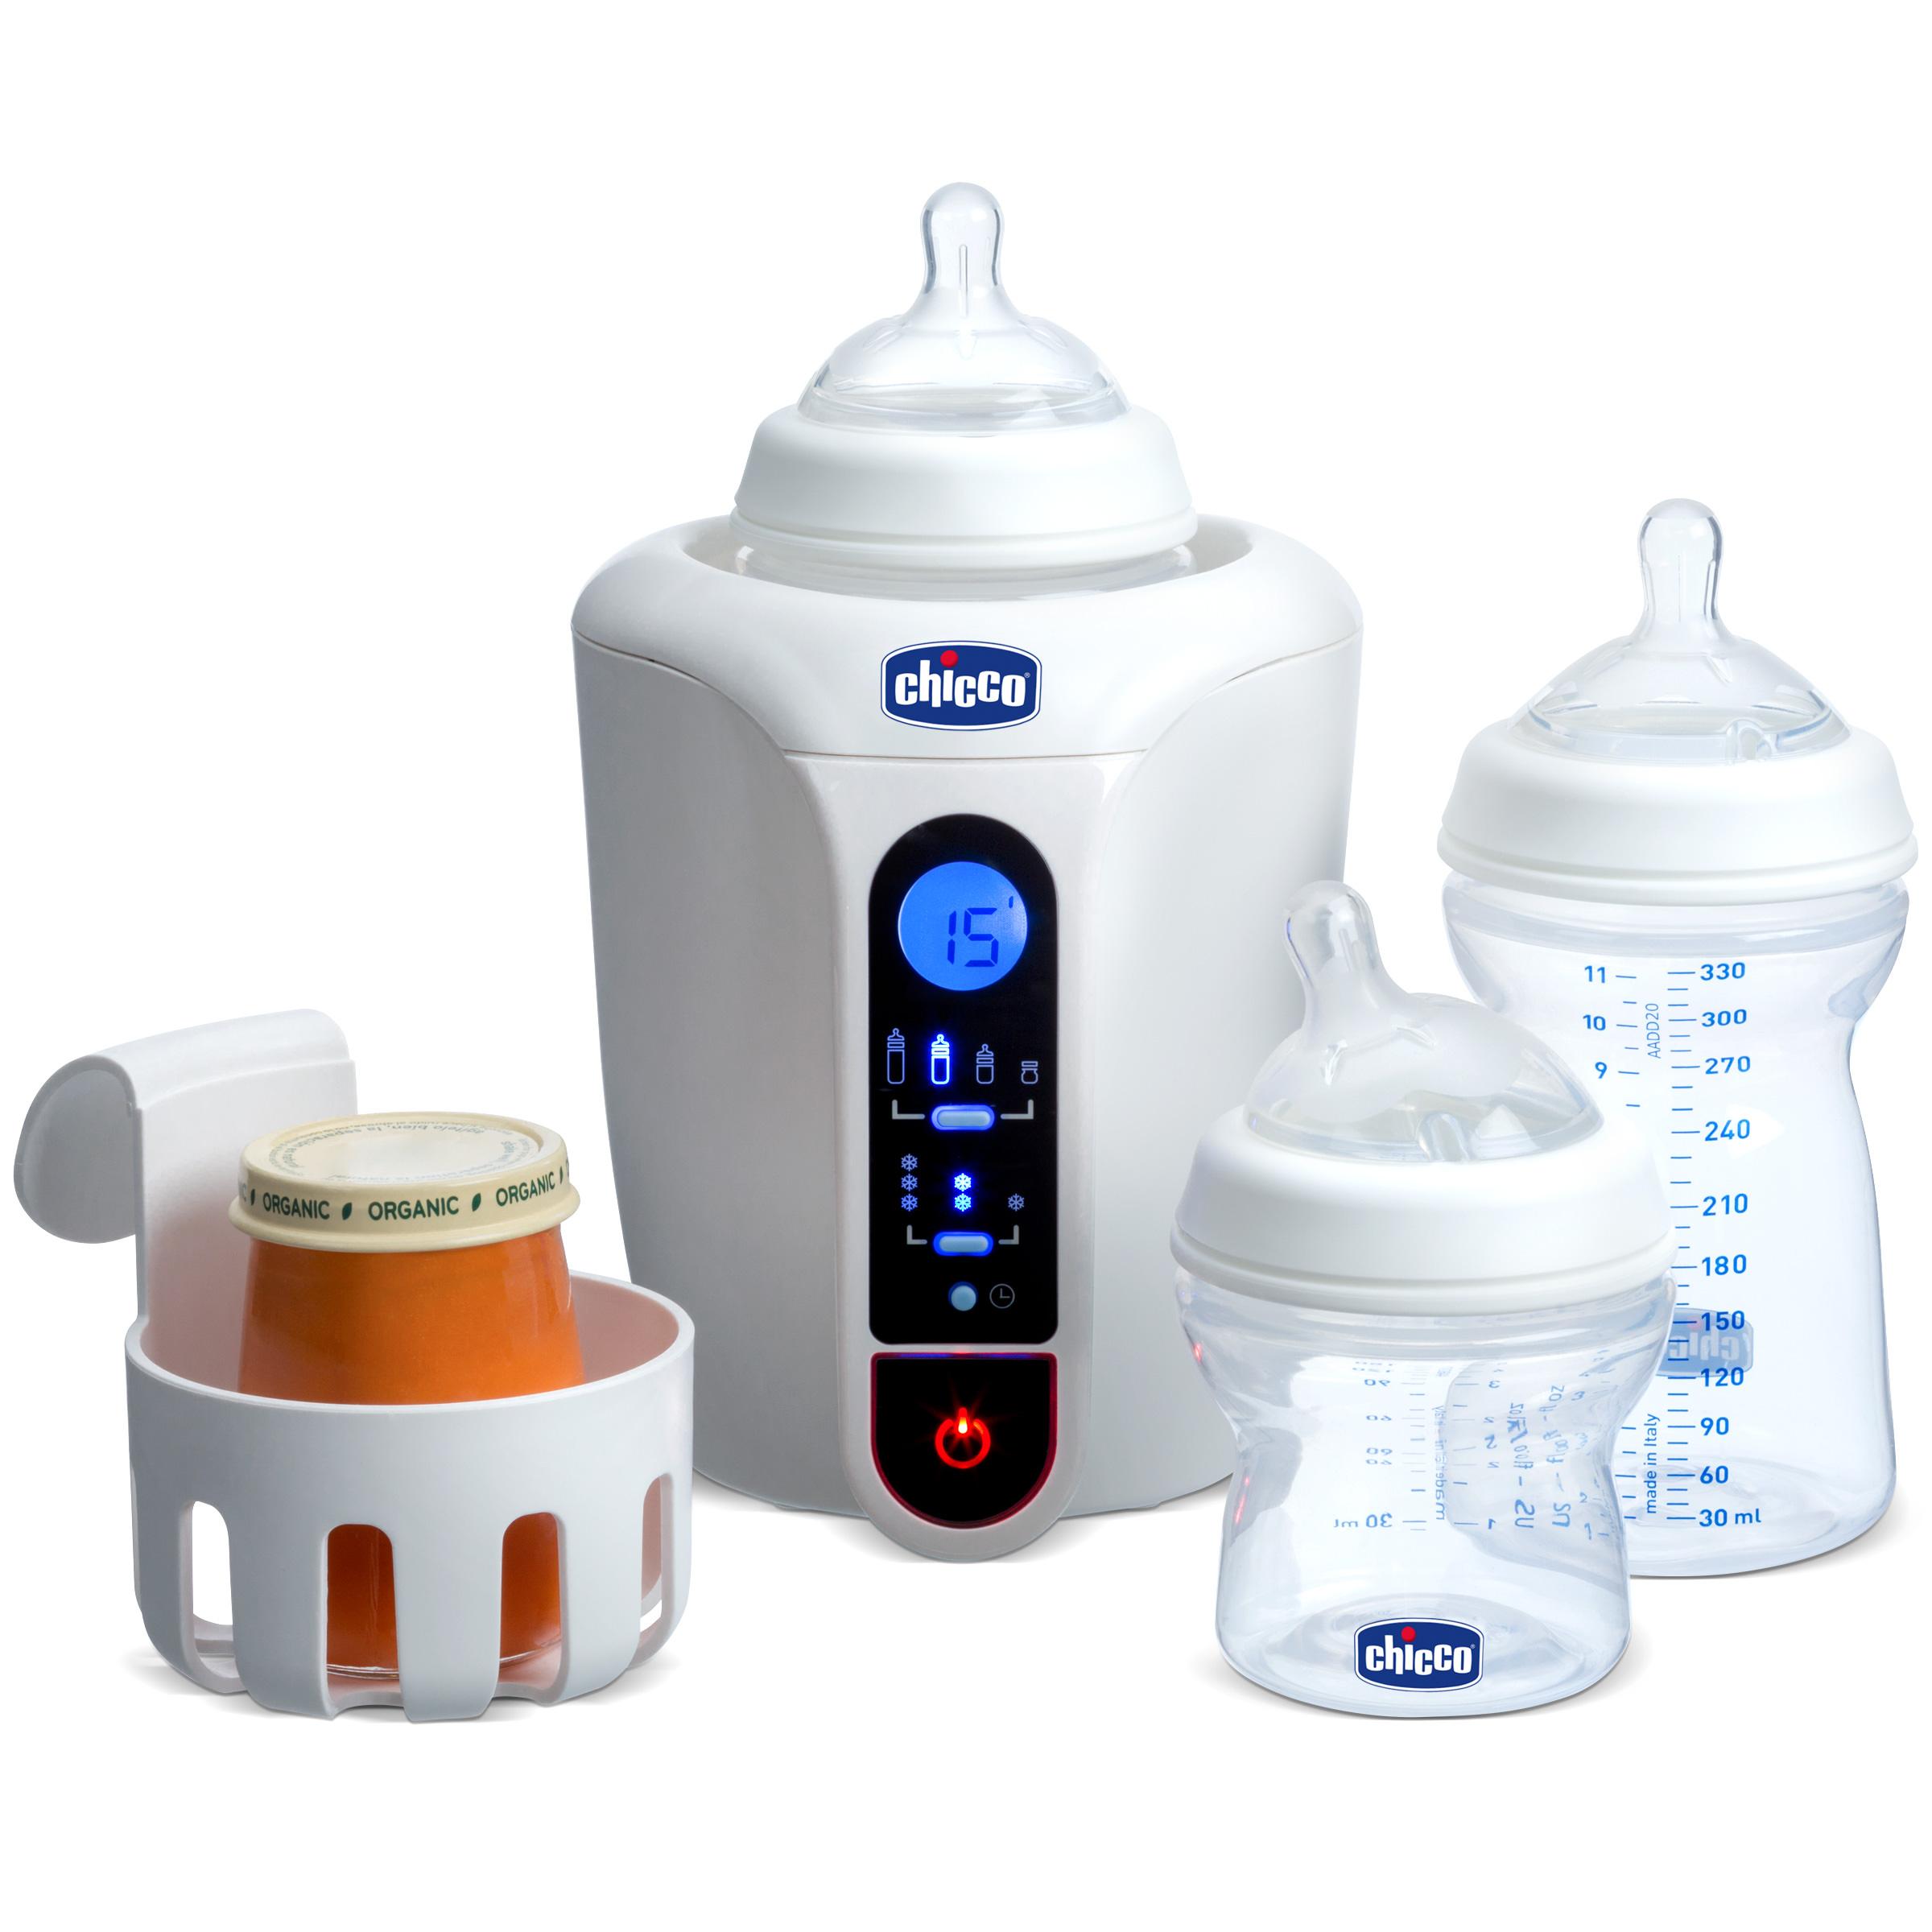 Chicco Digital Bottle and Baby Food Warmer